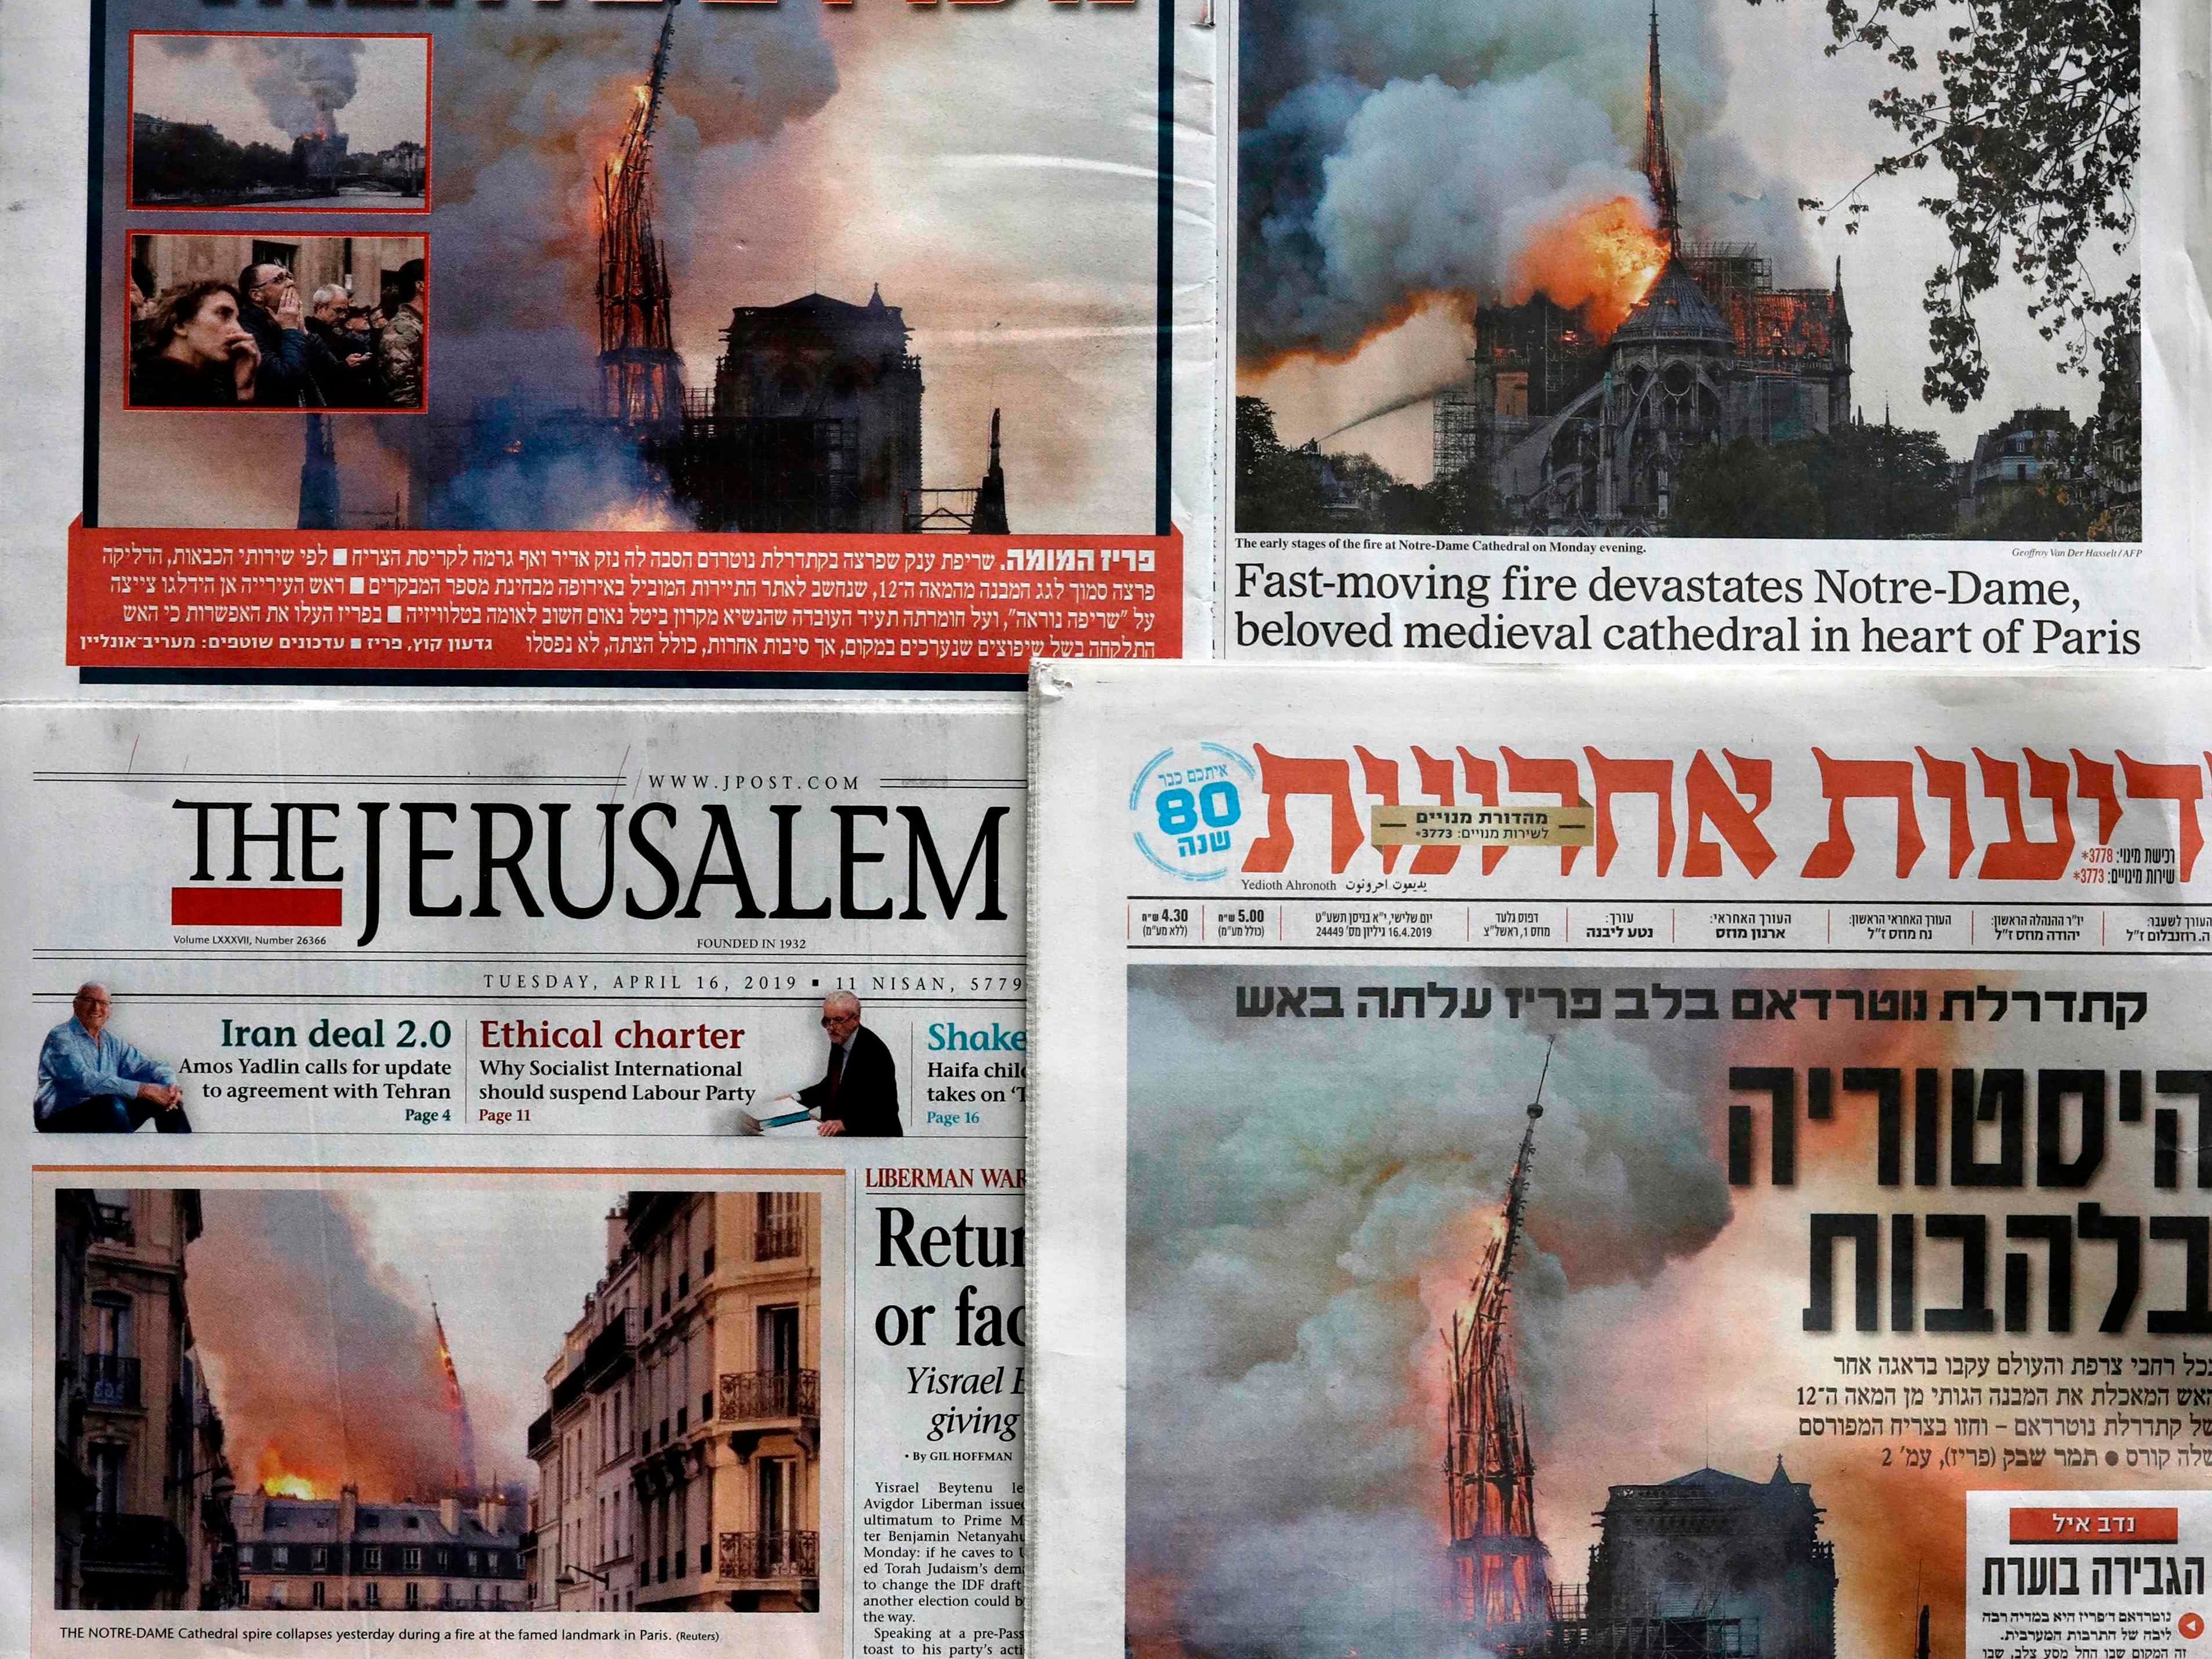 Israeli and Palestinian newspapers, featuring images of the fire that ravaged the Parisian Notre Dame cathedral on their front pages are seen in Jerusalem, on April 16, 2019.